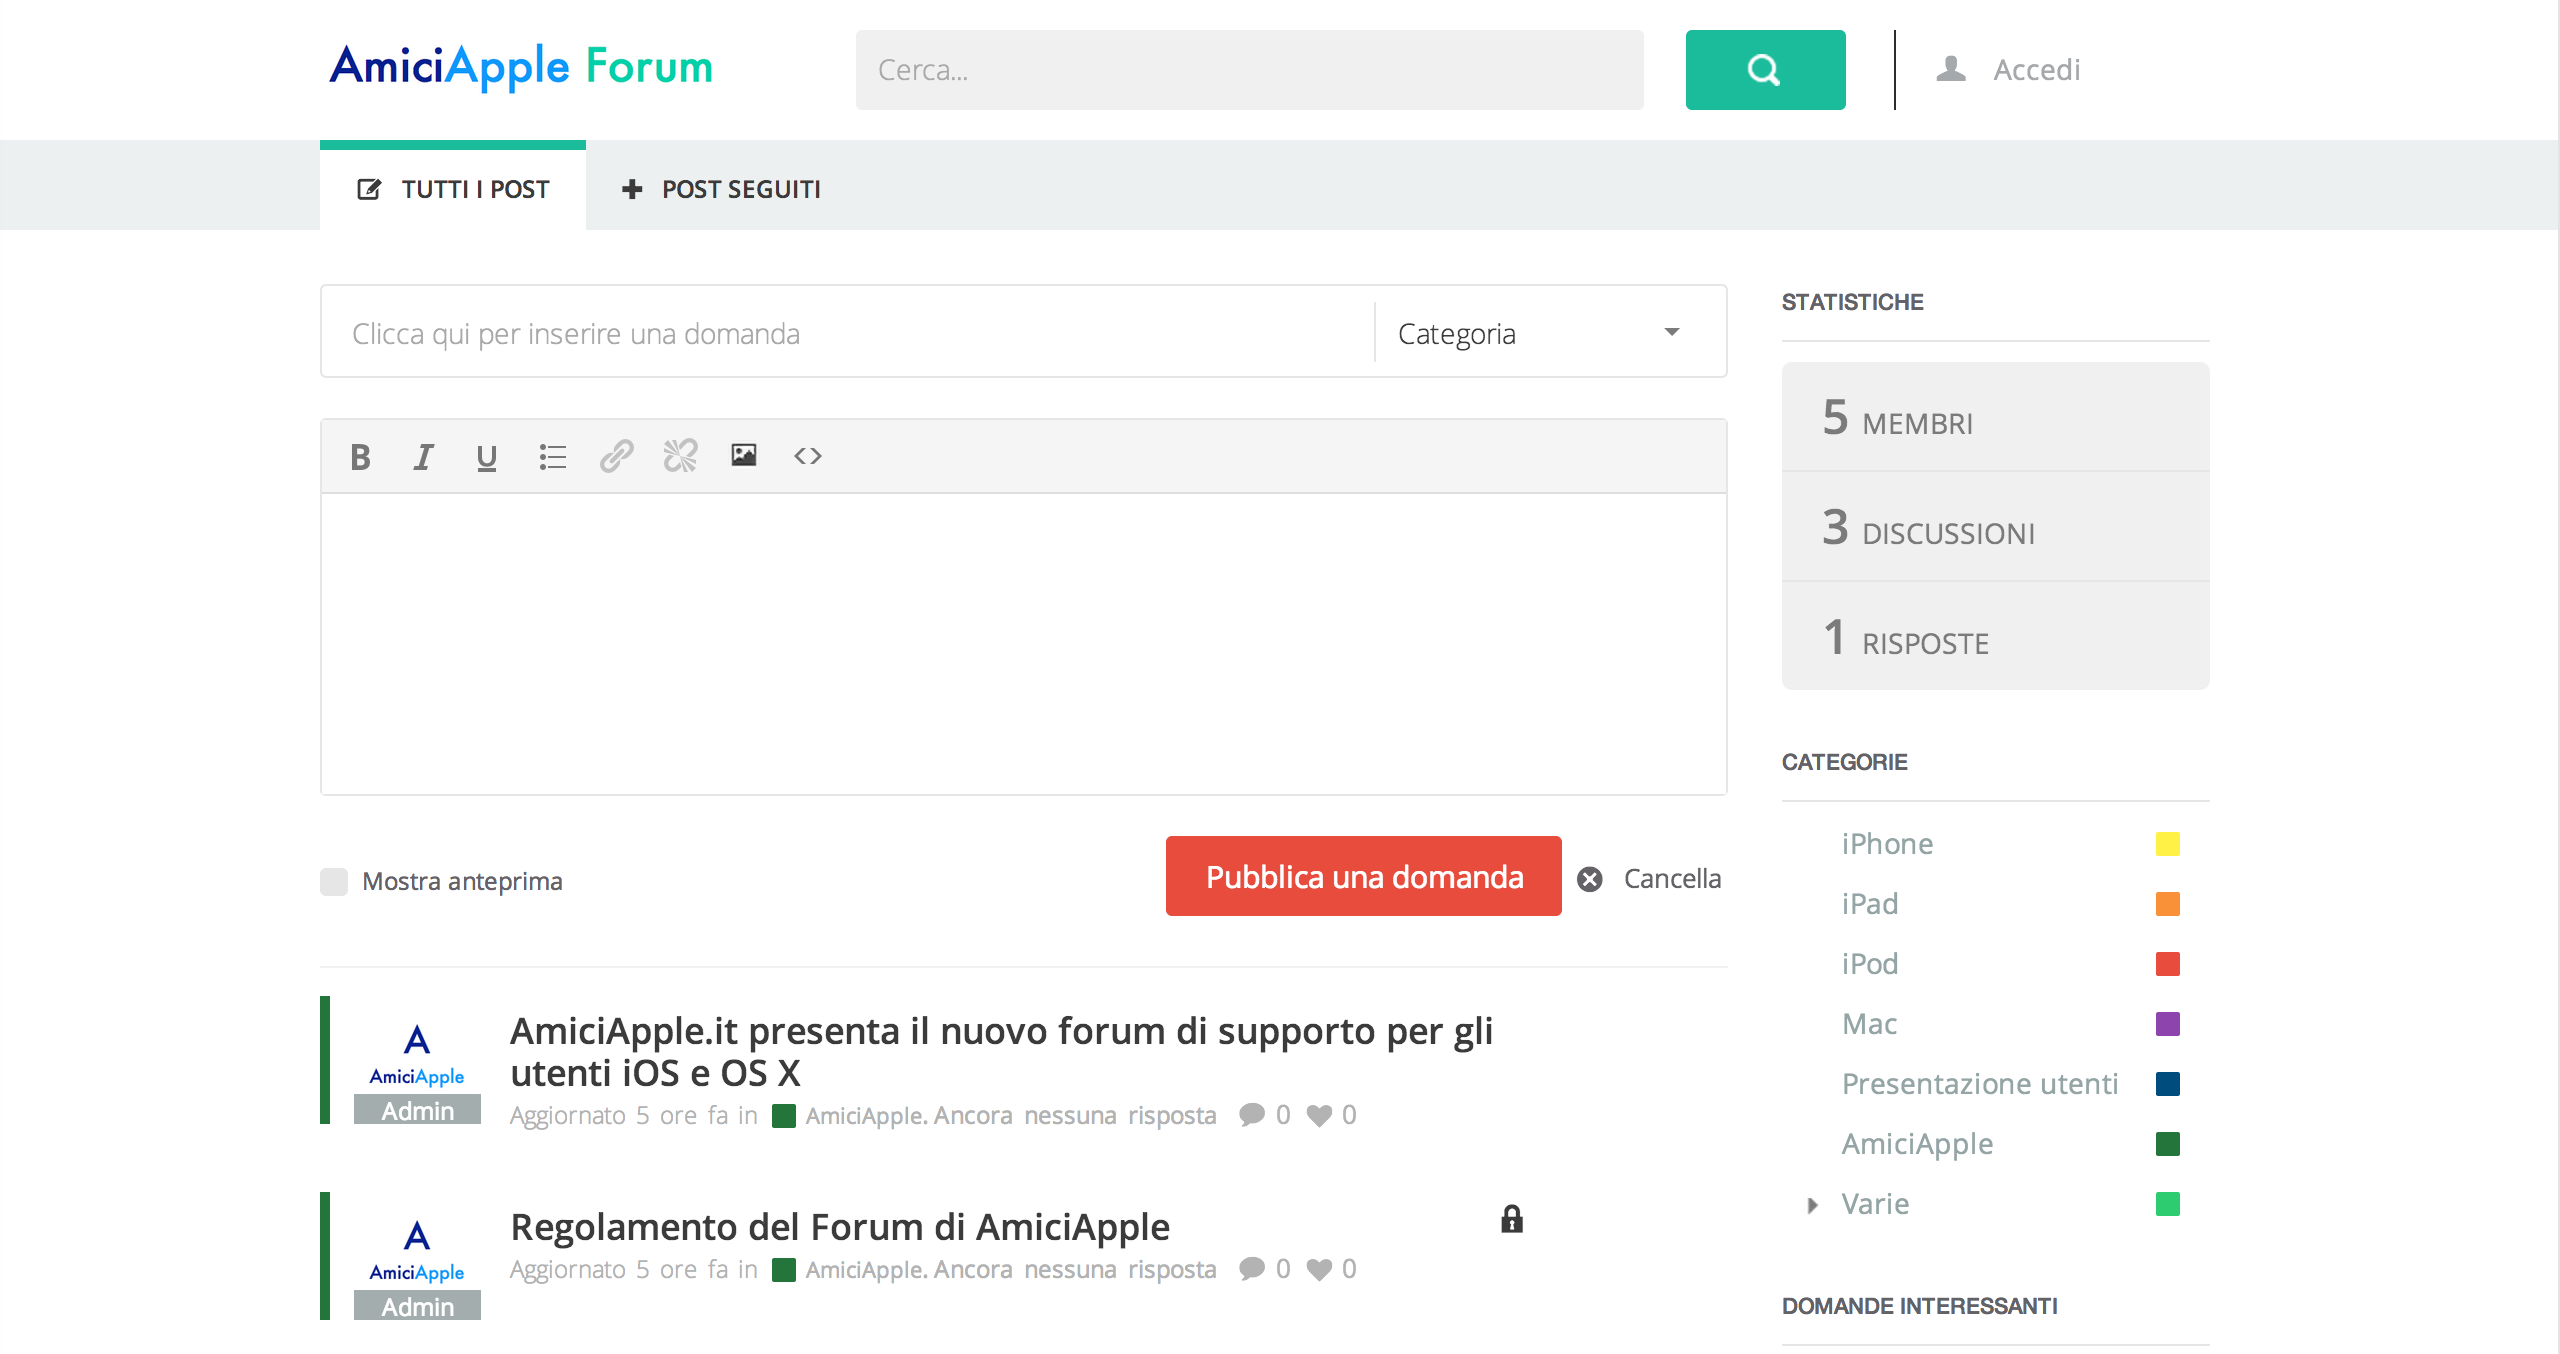 AmiciApple Forum Home